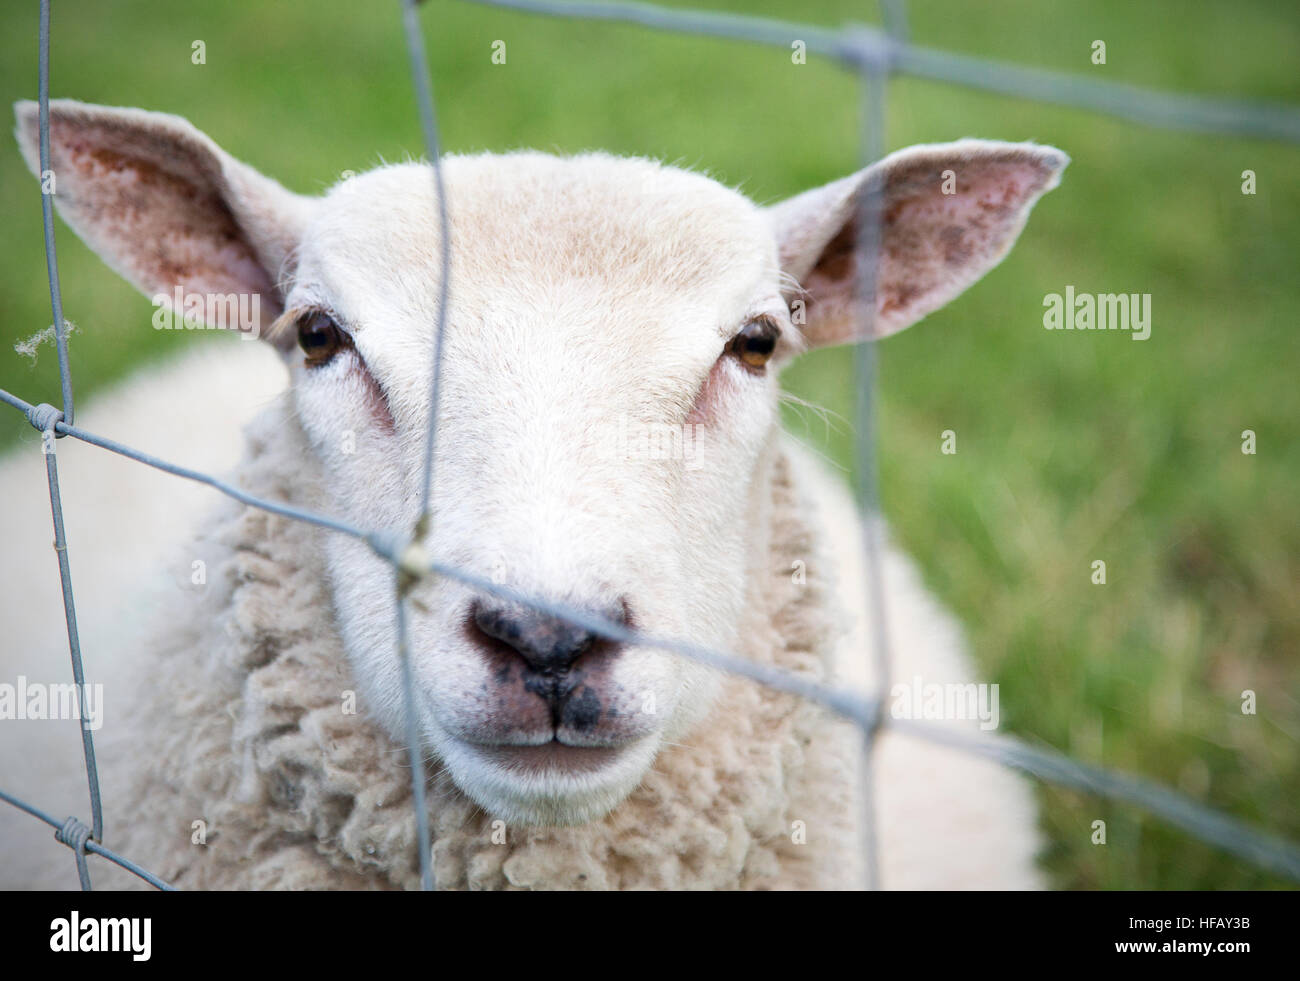 A single sheep behind a a fence - Stock Image